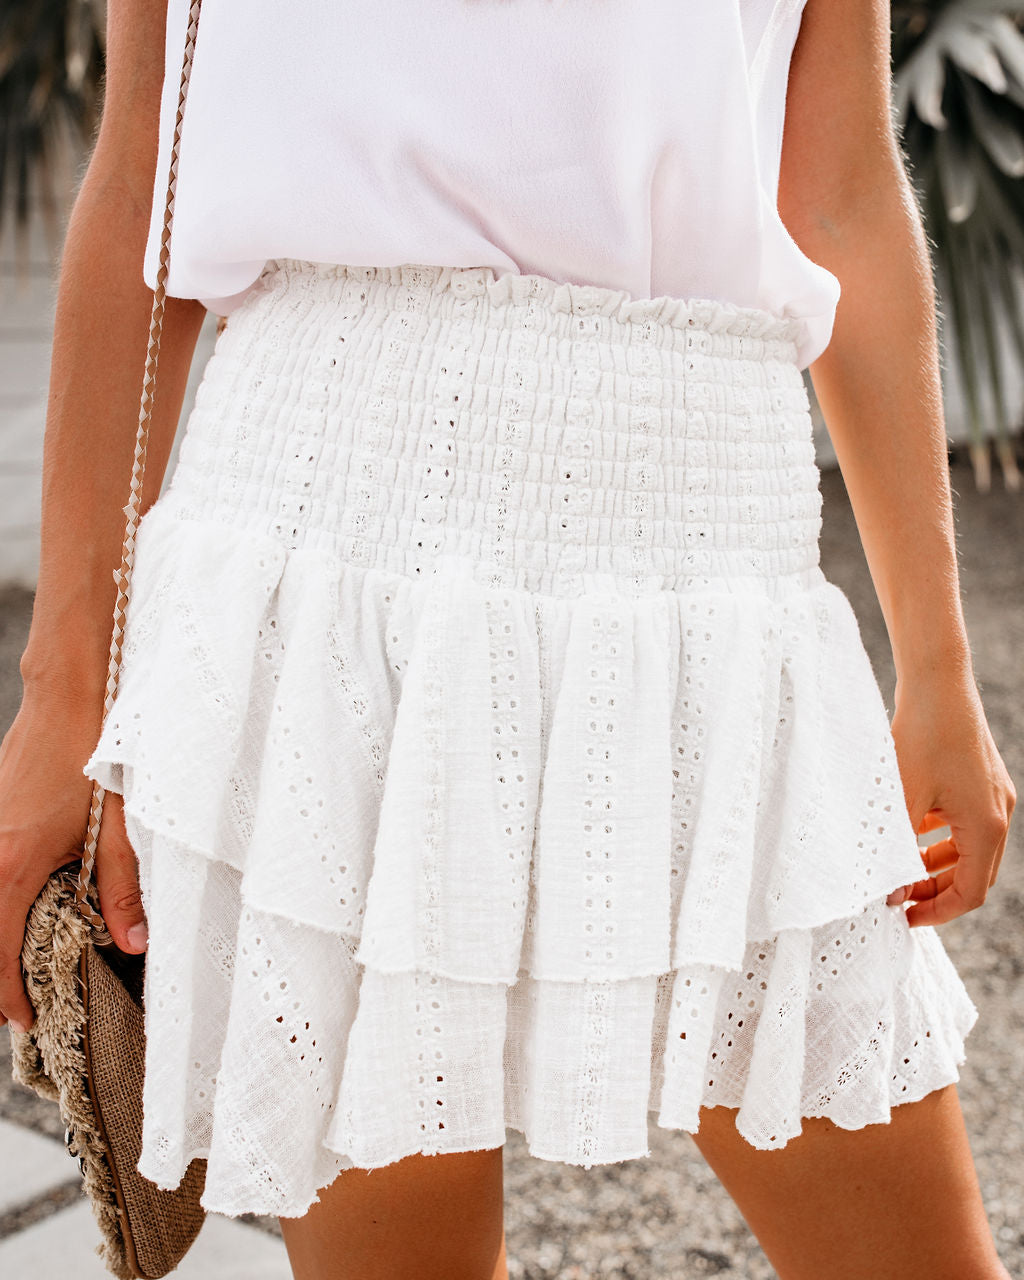 d0371c3bb45846 Alexis Smocked Cotton Eyelet Tiered Mini Skirt – VICI